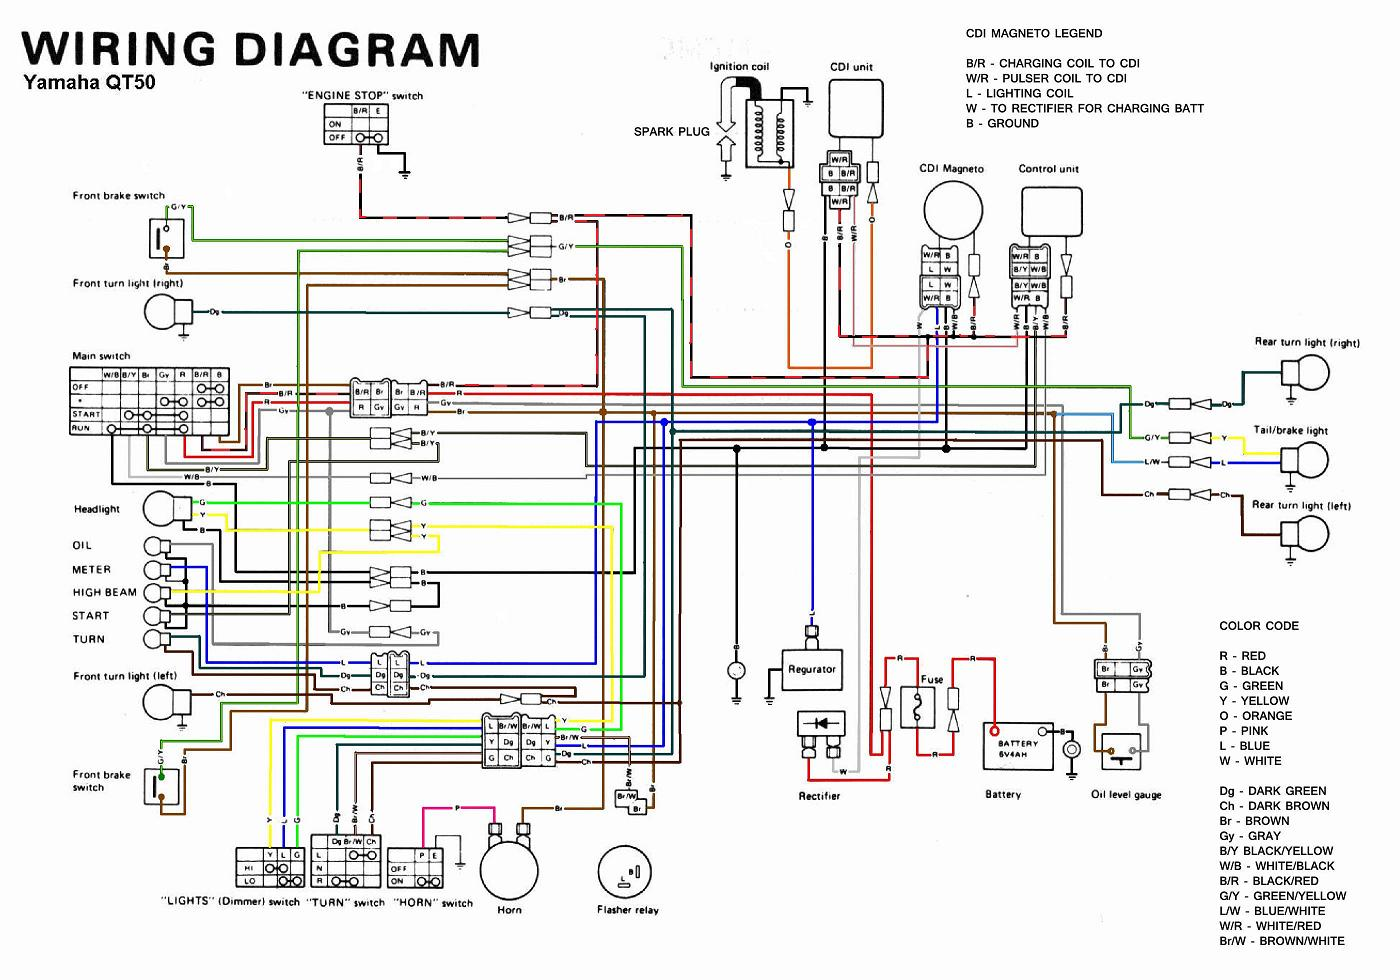 Yamaha QT50 Wiring Diagram yamaha qt50 wiring diagram yamaha qt50 luvin and other nopeds wiring diagram for dummies at eliteediting.co